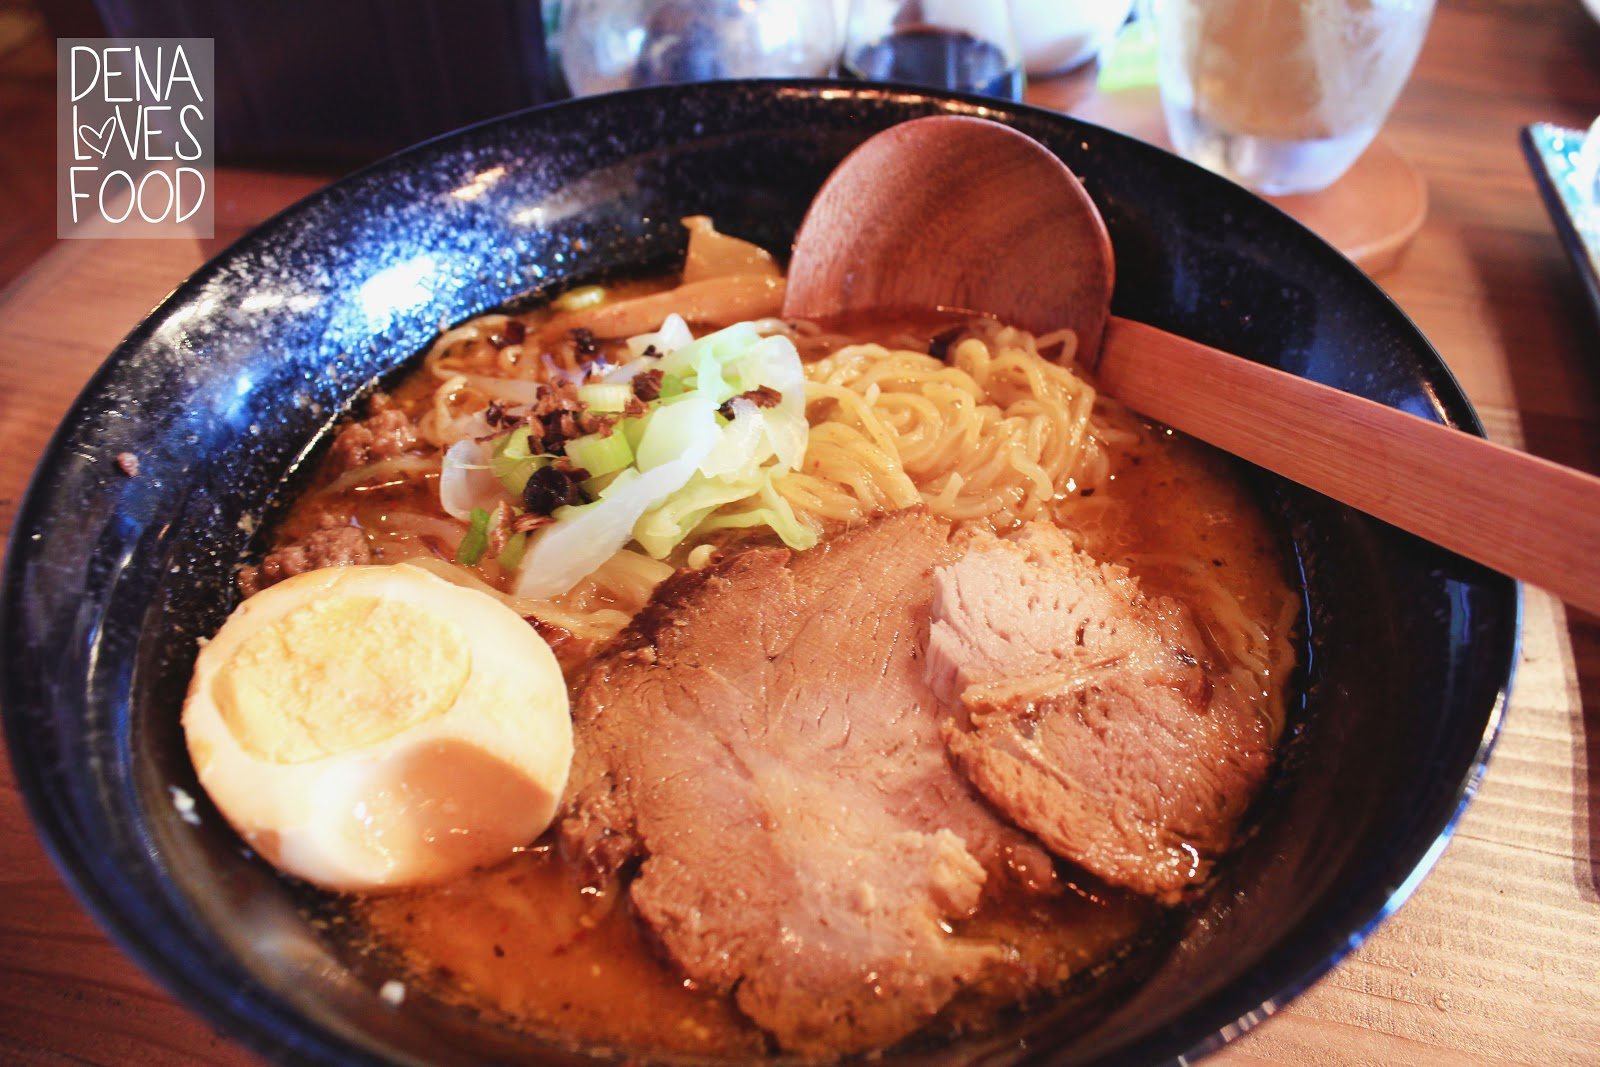 Ramen Is So Hard To Come By In Tampa And Iu0027ve Seen Many Shops Come And Go.  We Now Have Japanese Kitchen Dosunco, A Small Yet Very Authentic Ramen Shop  ...